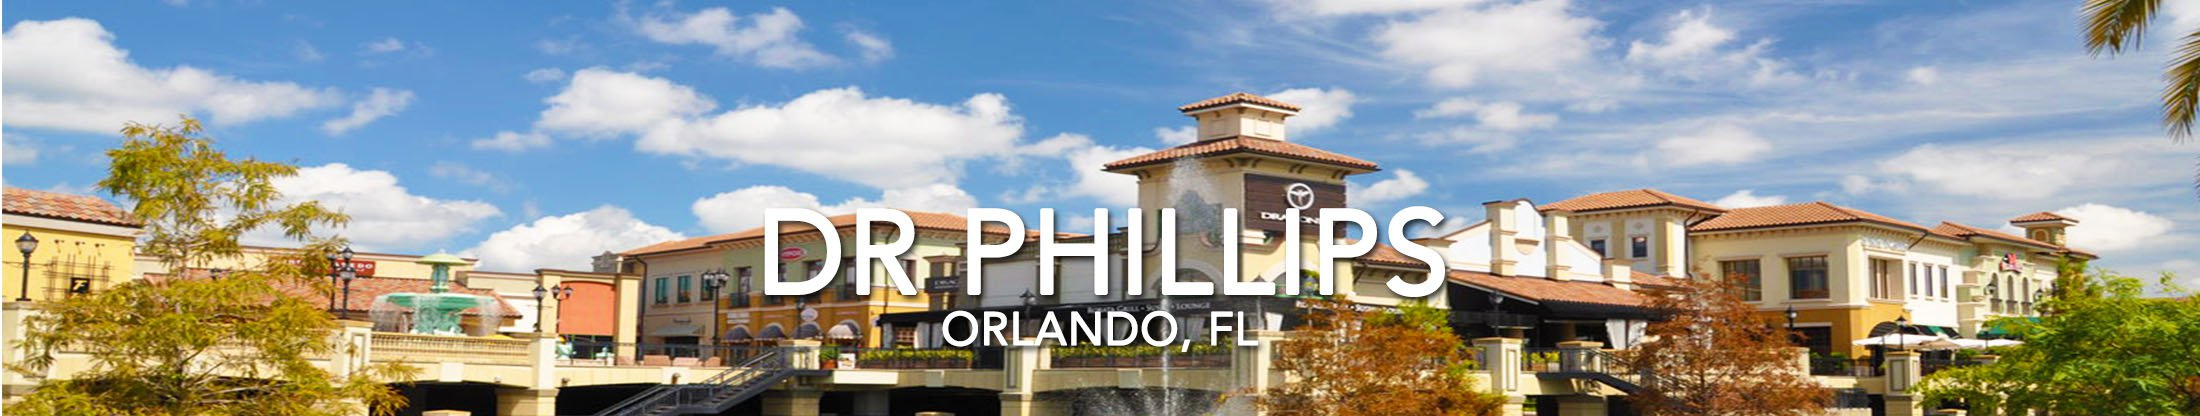 About Dr Phillips Orlando Florida